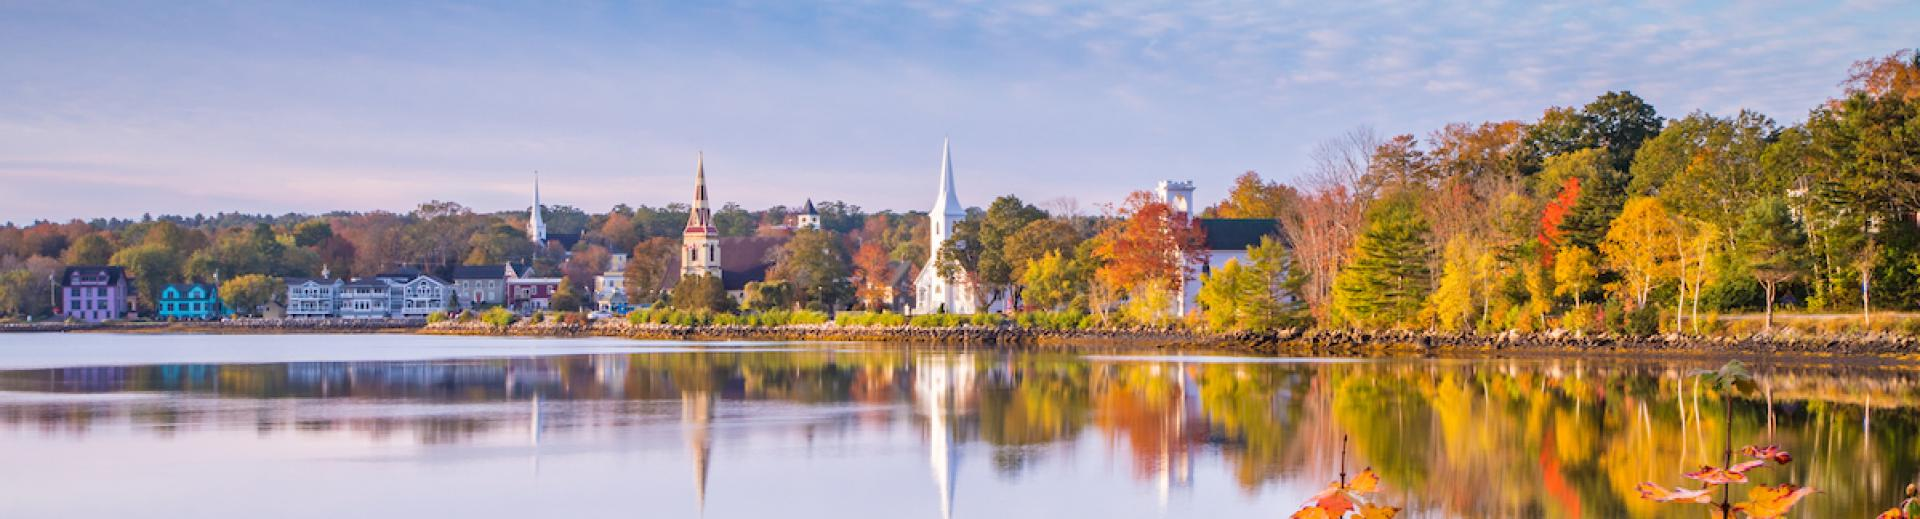 Three Churches, Mahone Bay, NS